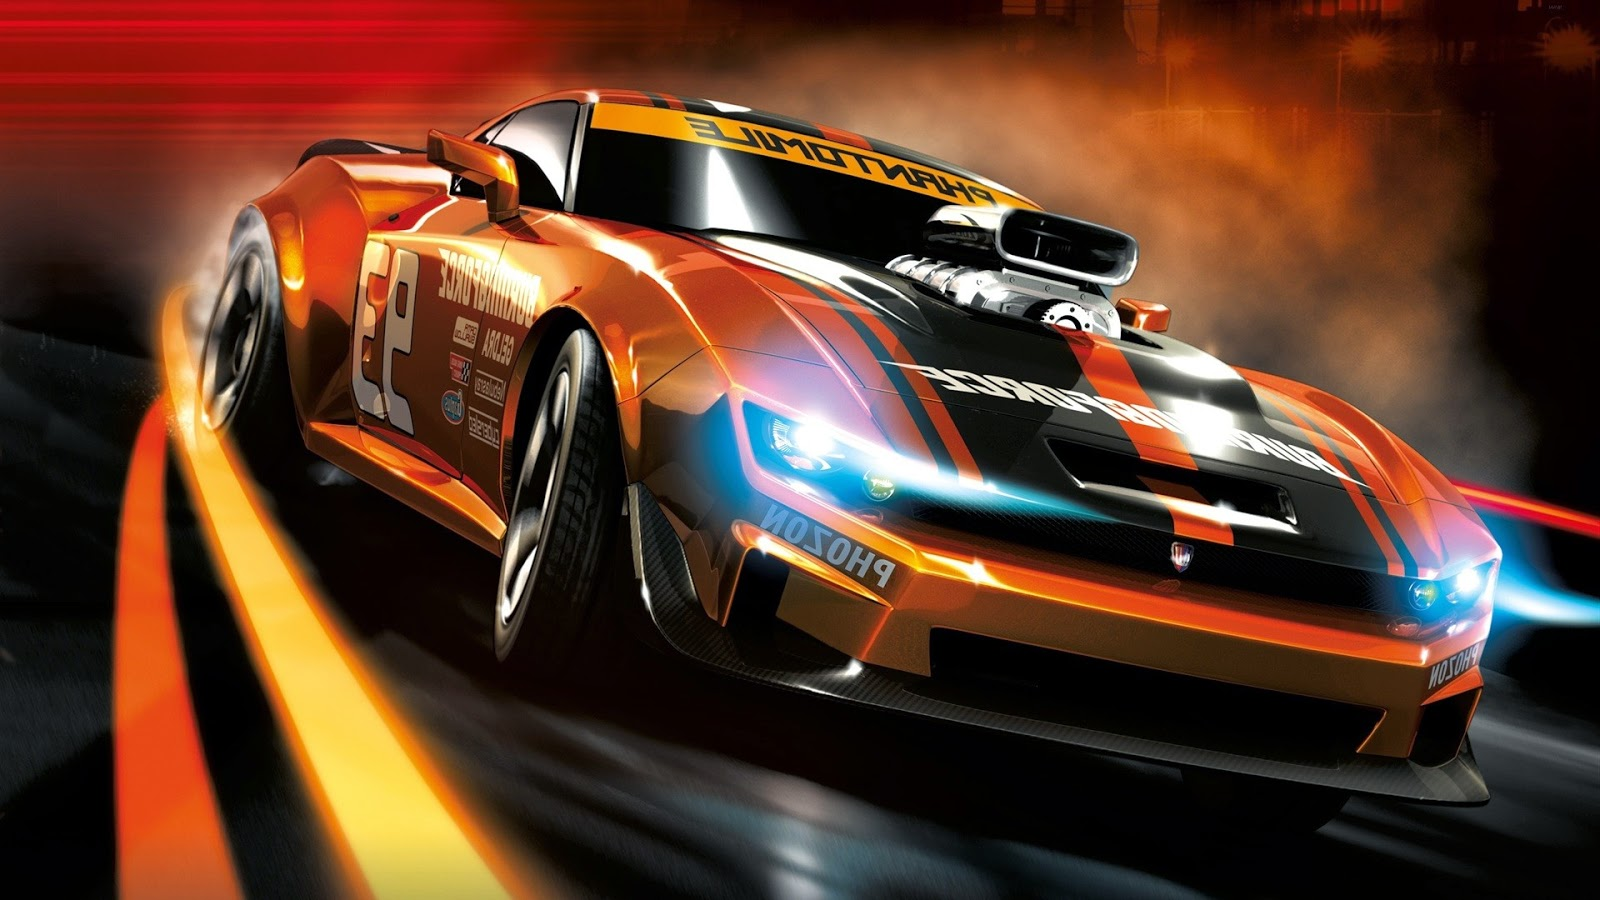 Auto Racing Wallpaper WallpaperSafari